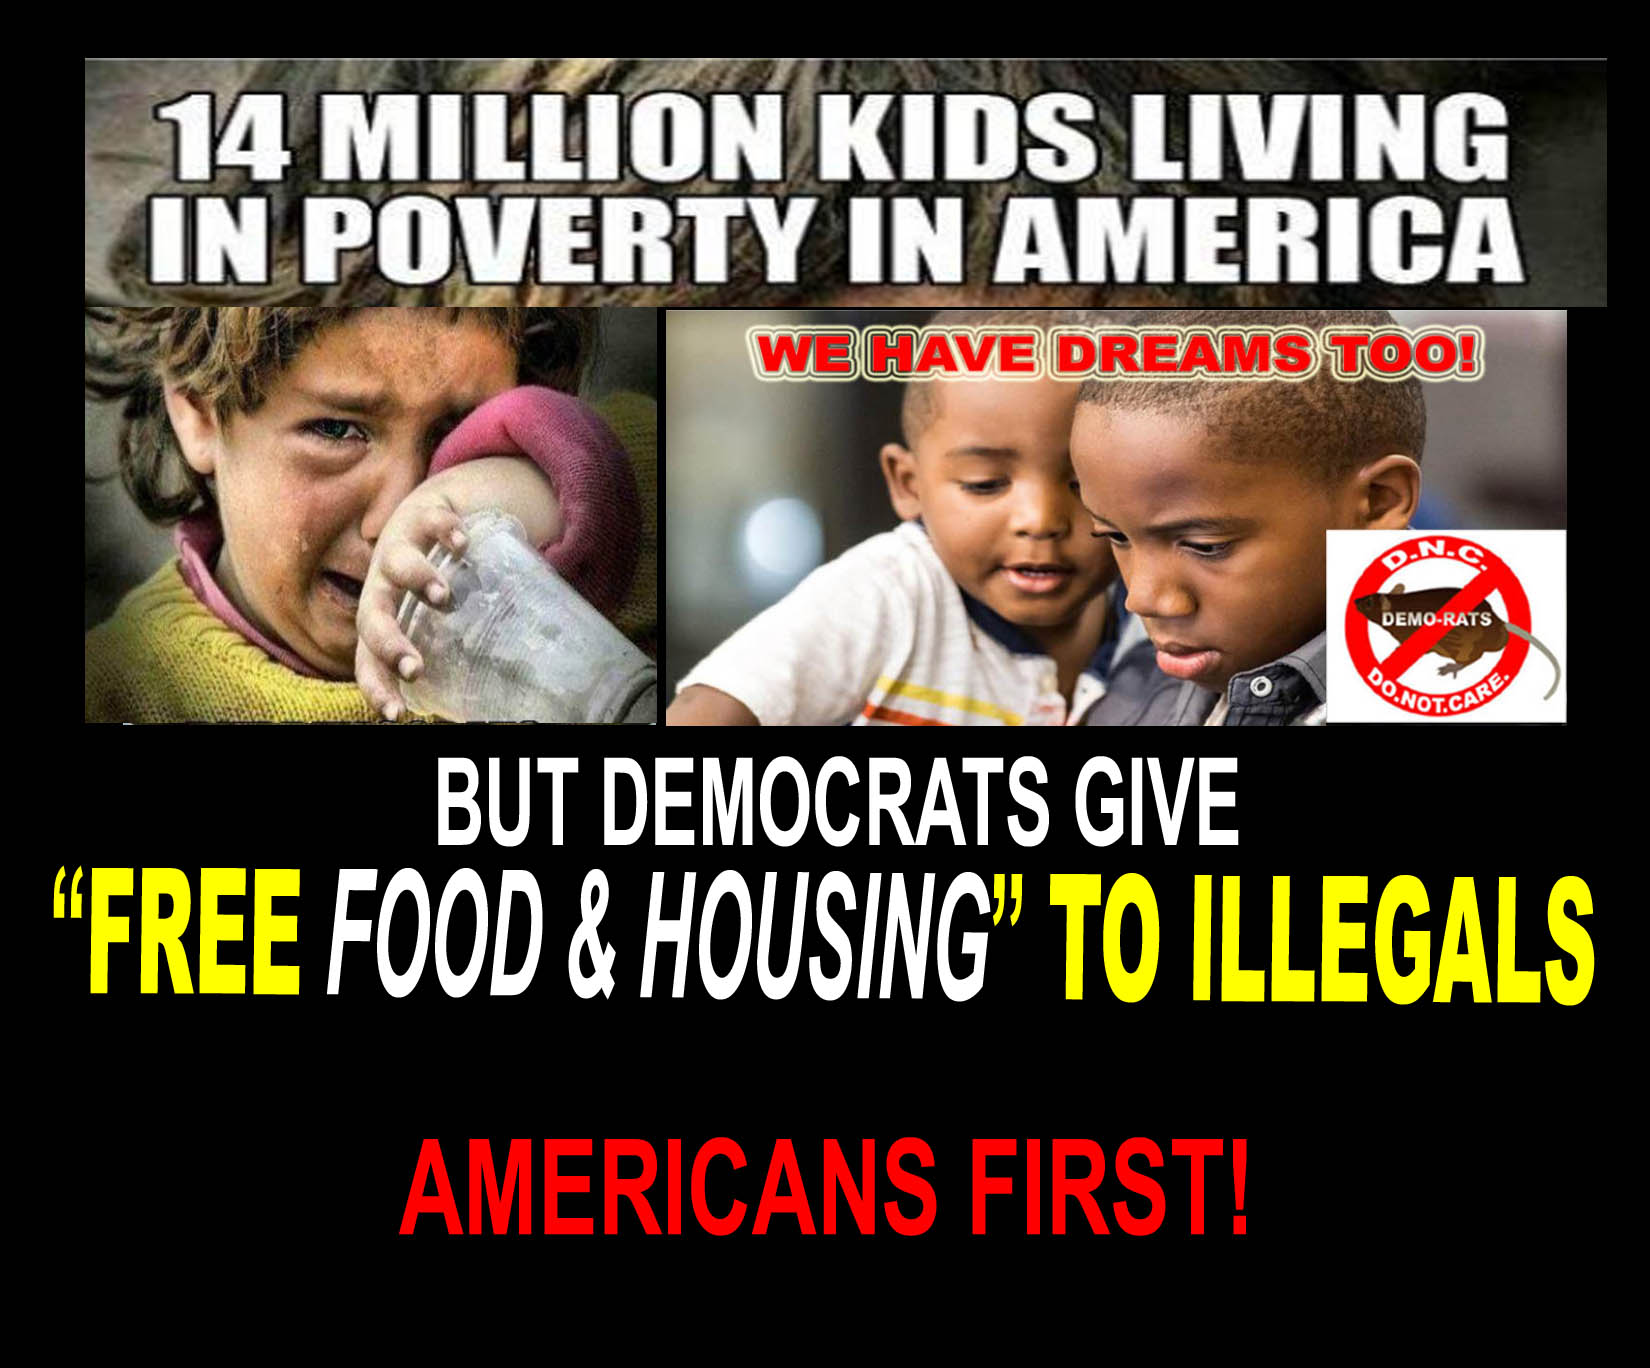 ILLEGALS - AMERICANS FIRST - 14 MILLION KIDS IN POVERTY - JPEG.jpg